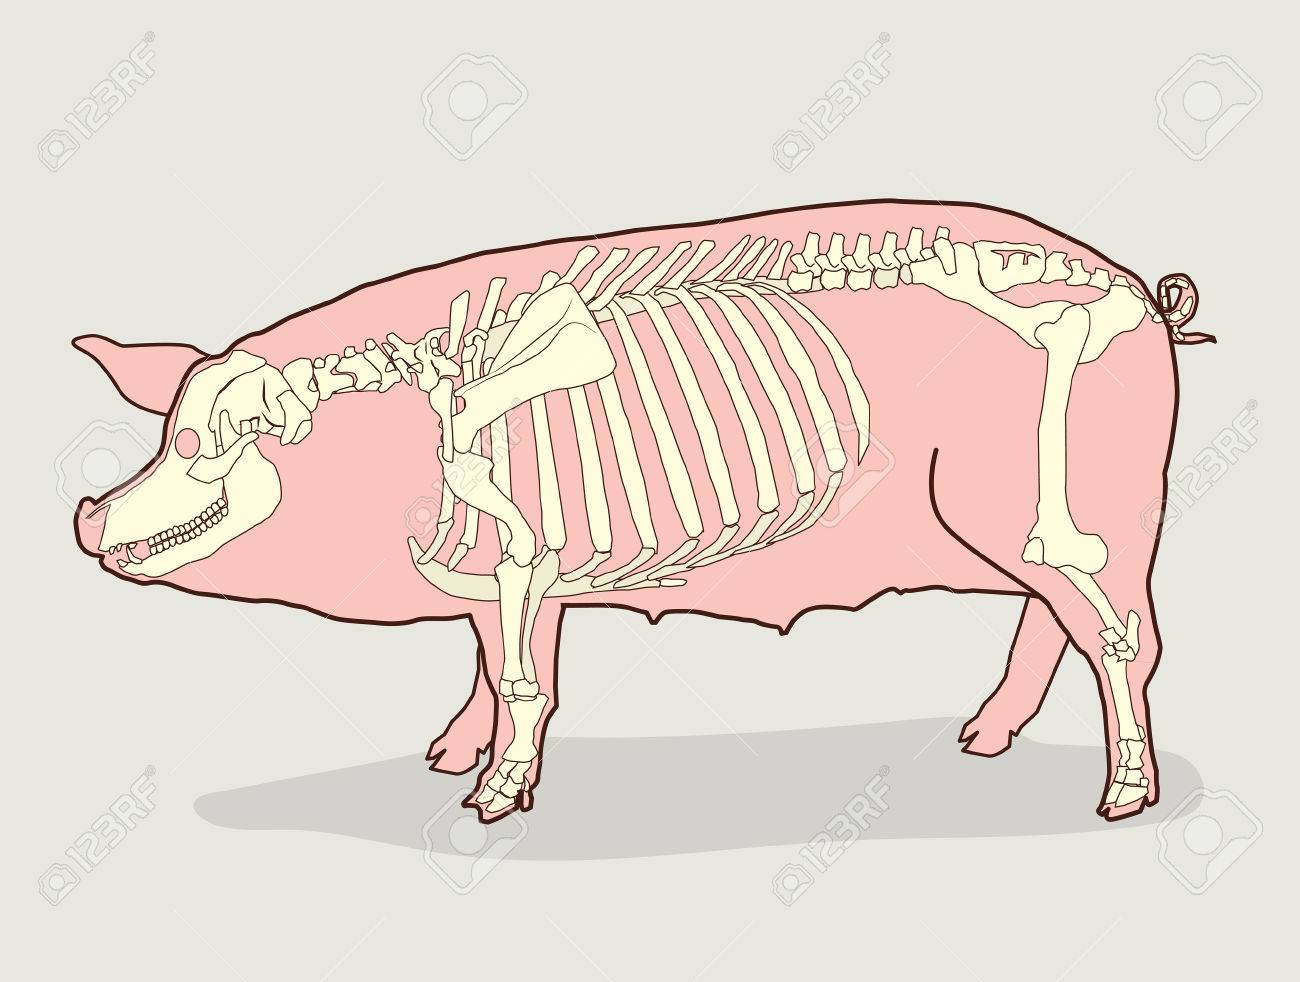 pig skeleton  vector illustration  pig skeleton diagram  pig skeleton for  sale  pig